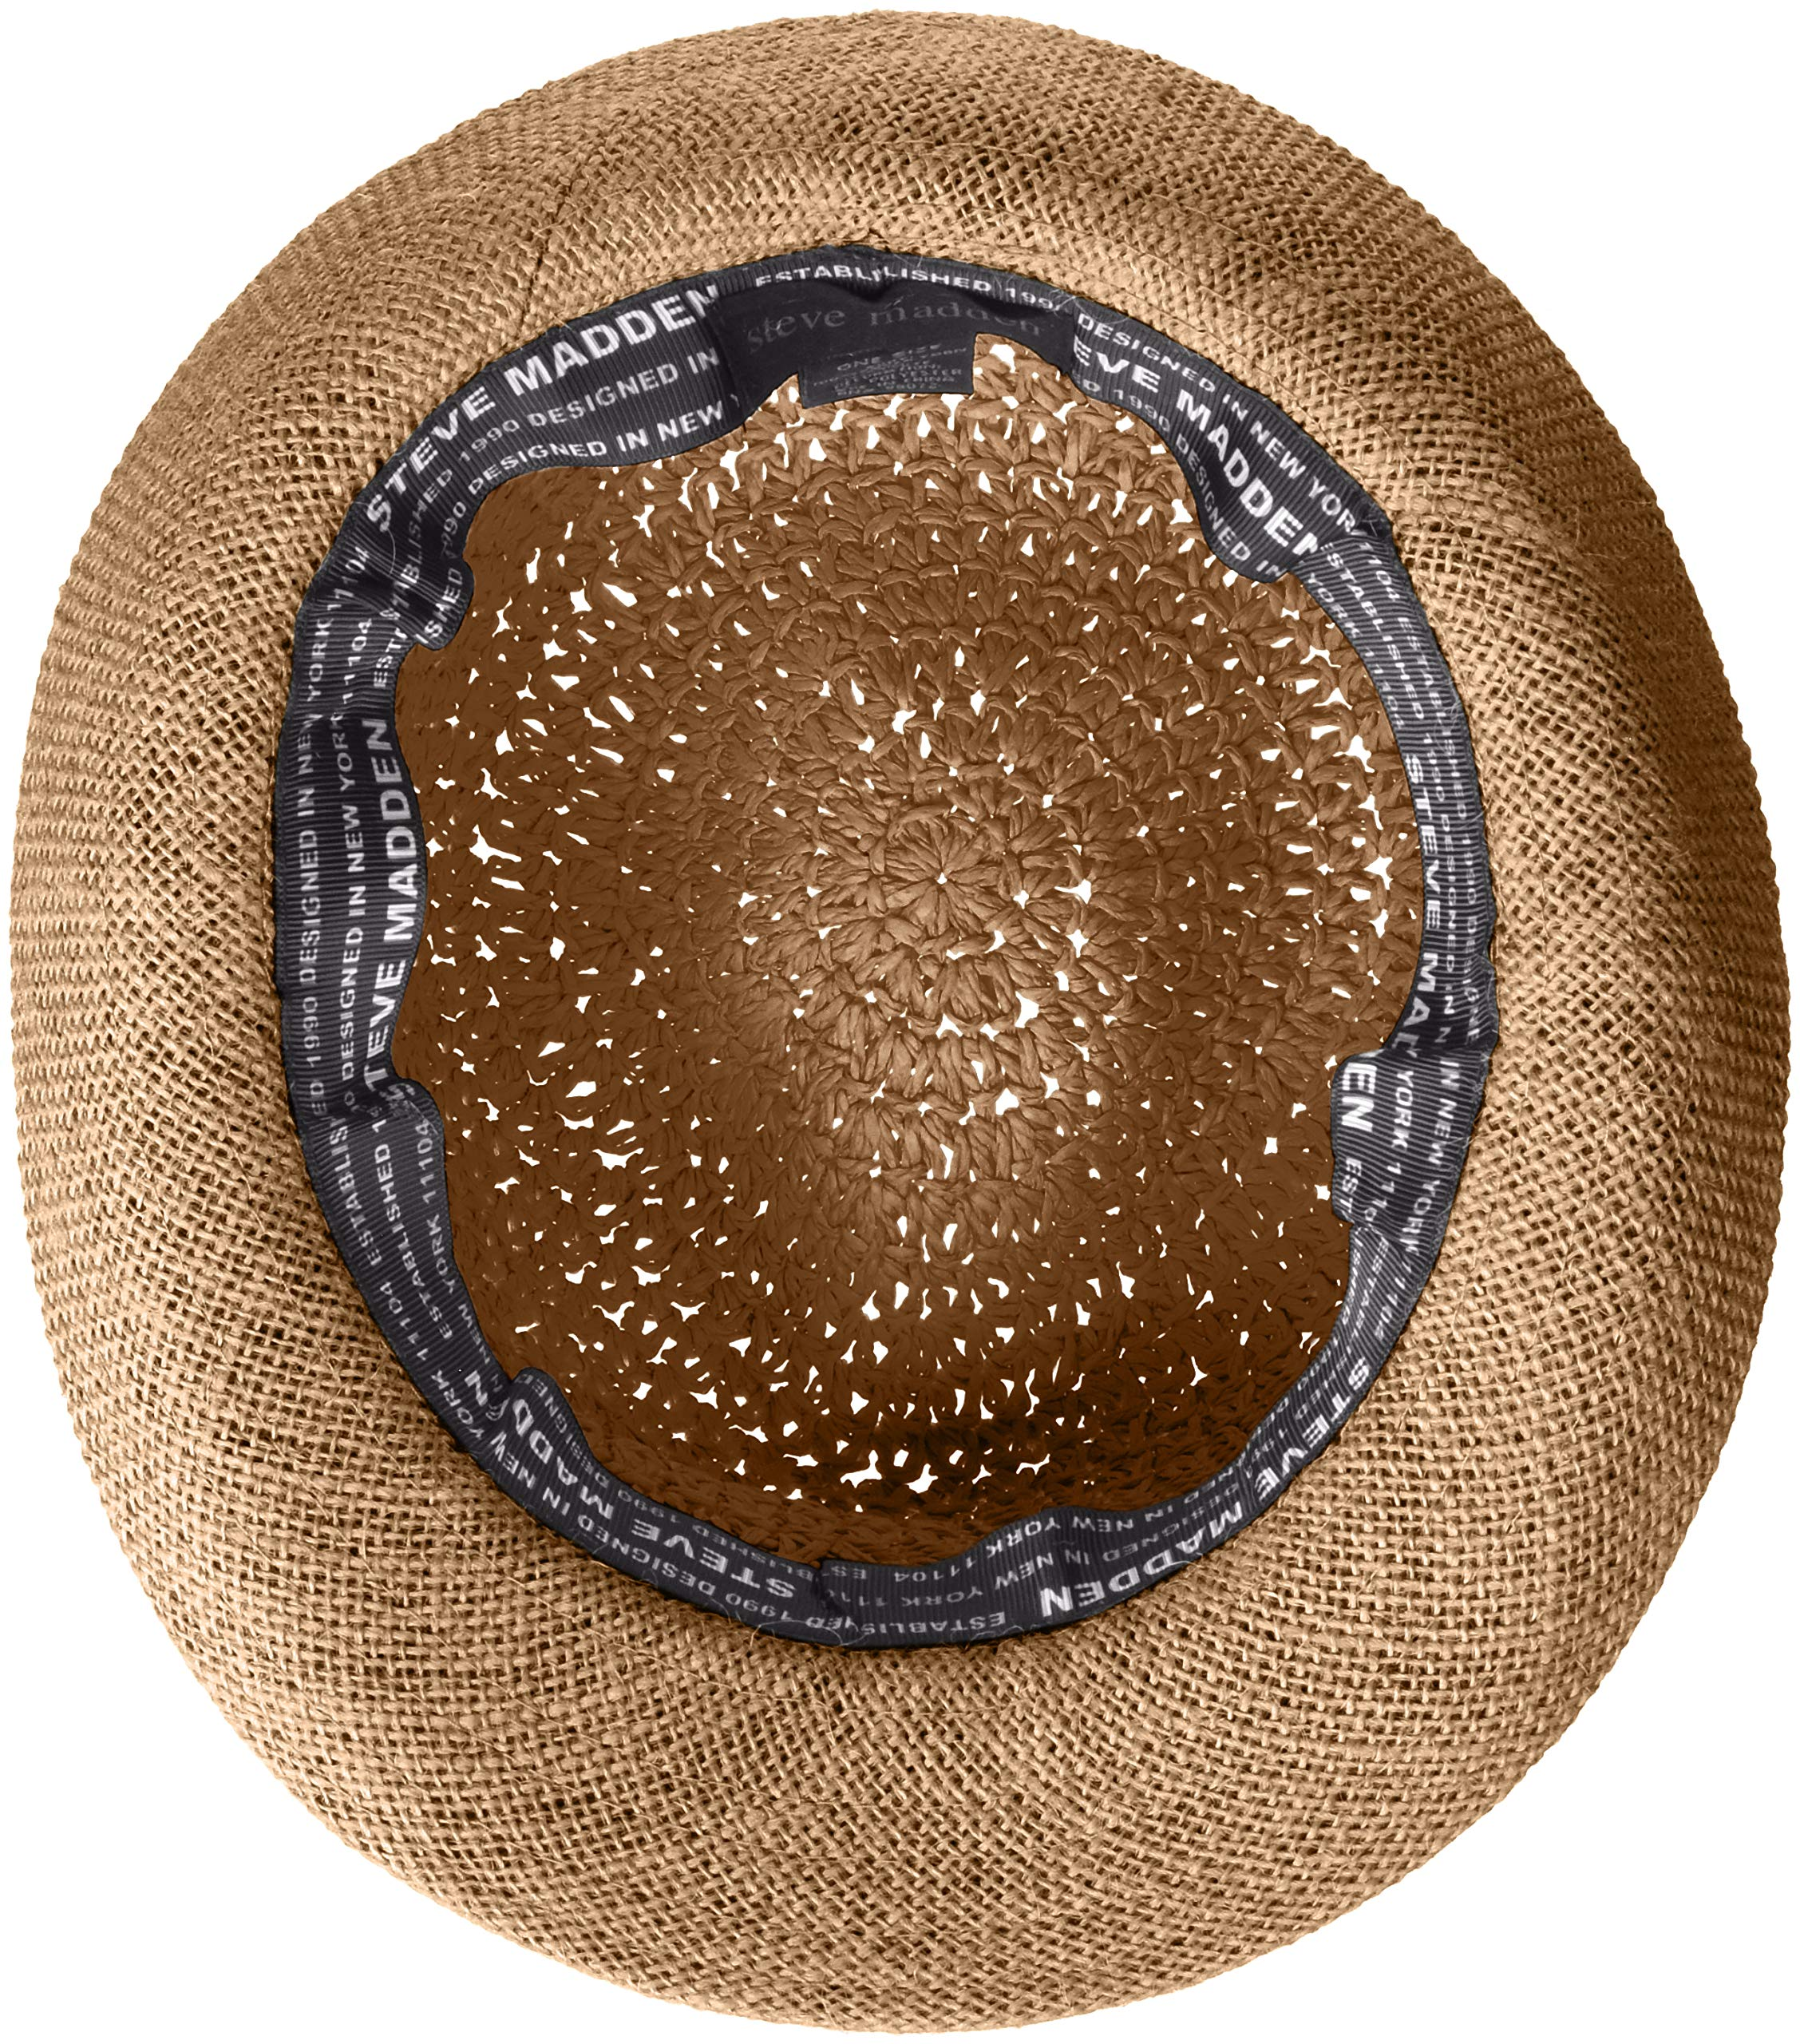 Steve Madden Women's Paper Crochet & Jute Short Brim Fedora with Two Tone Band, Navy One Size by Steve Madden (Image #3)